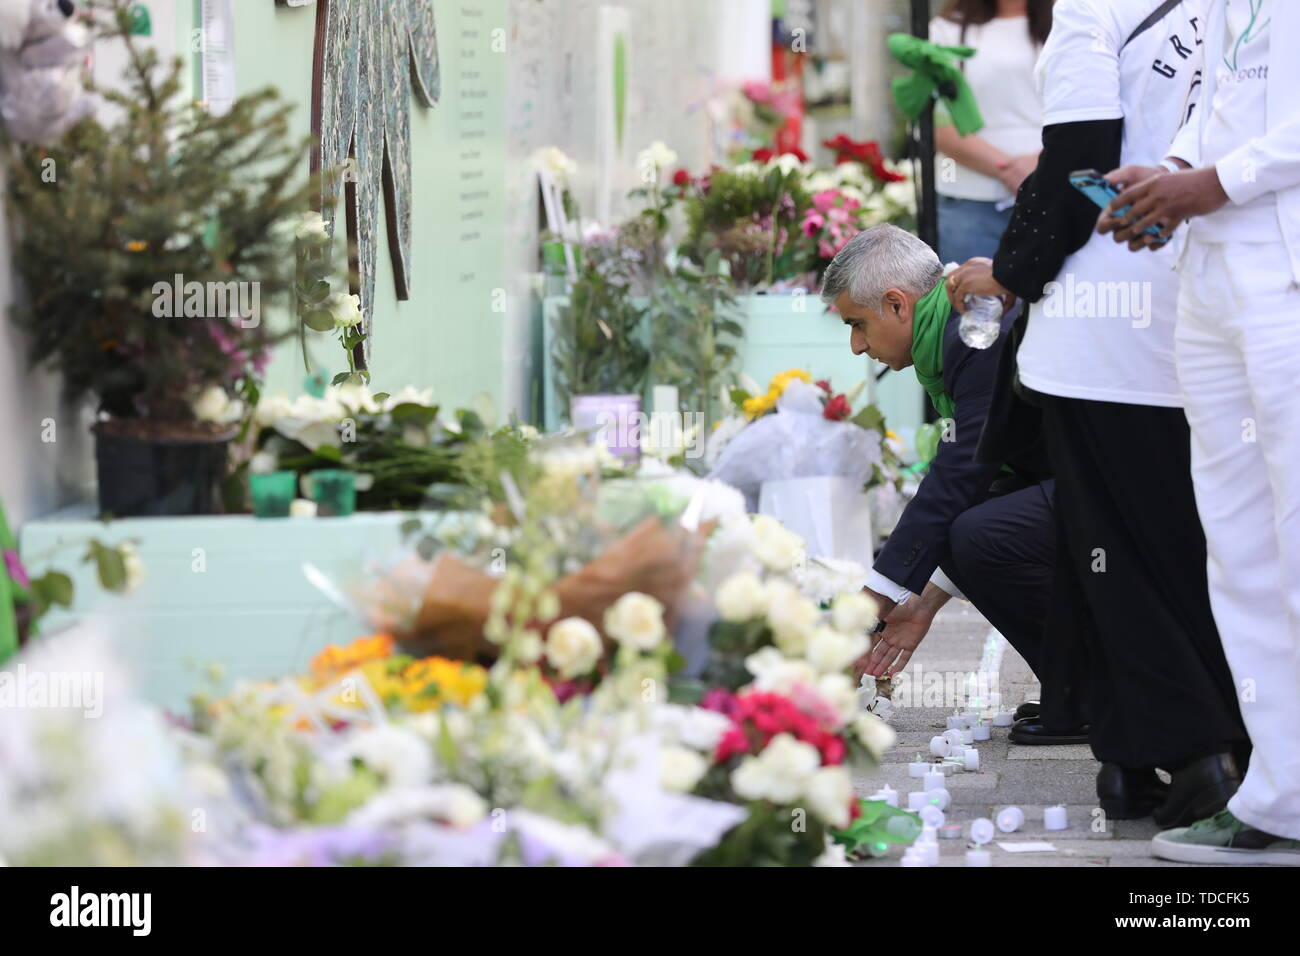 Mayor of London Sadiq Kahn lays a wreath outside Grenfell Tower, London, to mark the two-year anniversary of the tower block fire in memory of the 72 people who lost their lives. - Stock Image